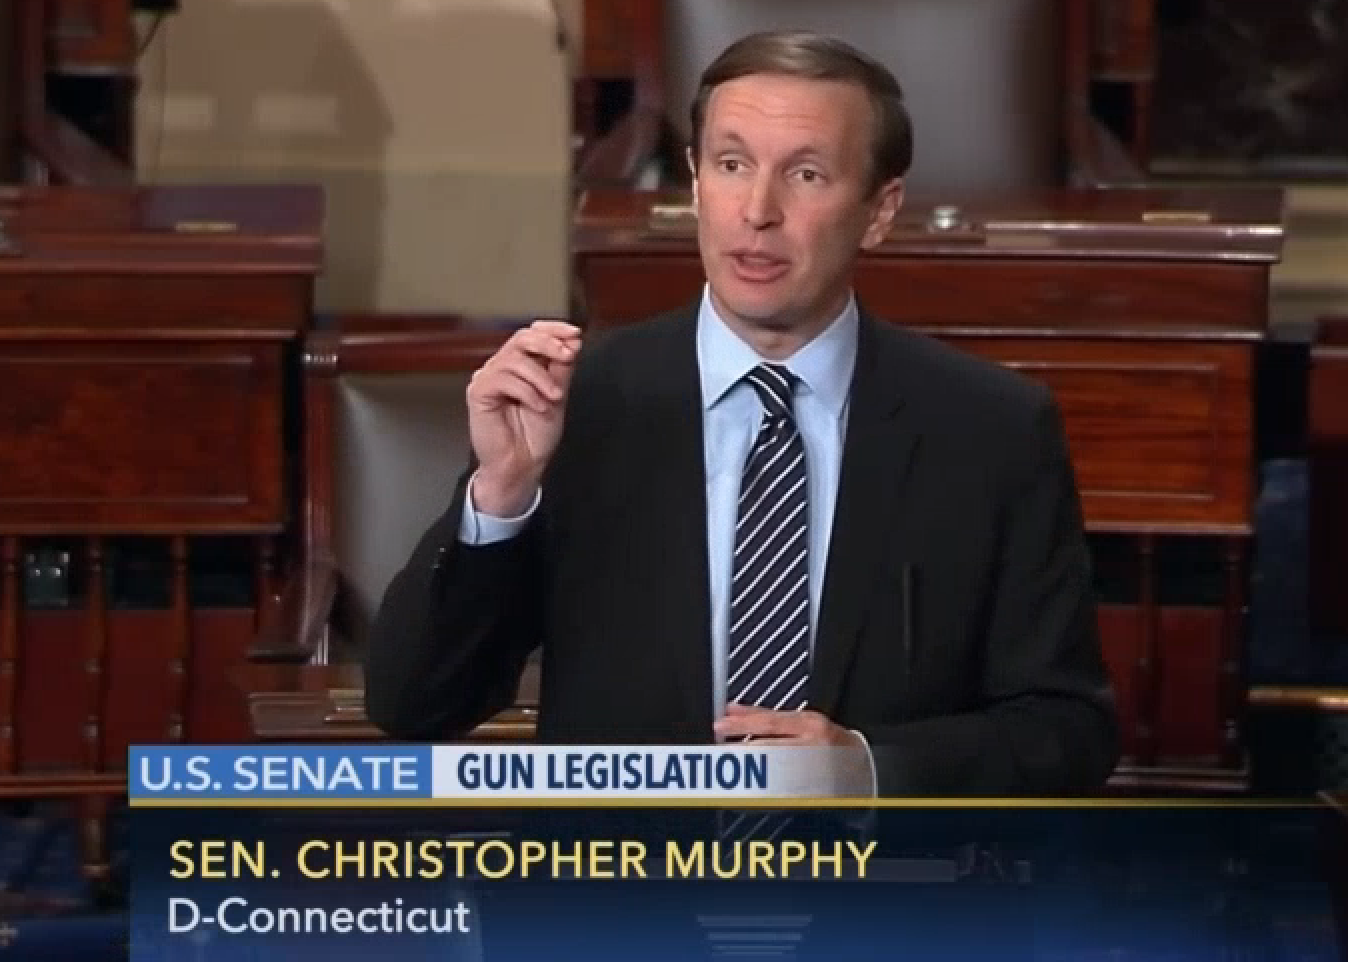 Senate rejects Murphy background-check provision and 'terror gap' bill